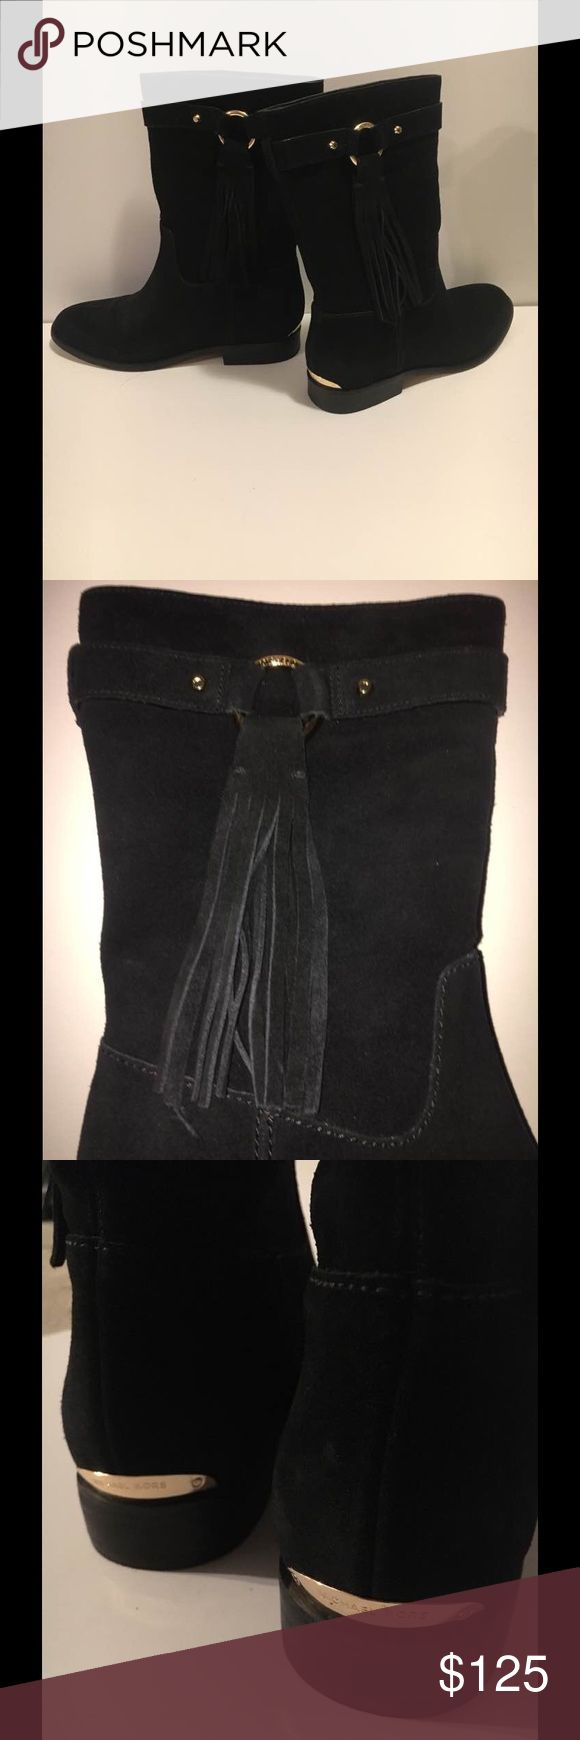 👢MIchael Michael Kors 👢Black Suede Boots 👢 Michael Kors Rhea black suede boot with gold hardware and tassel. Excellent condition! wore once, twice at the most. You can see details when picture is enlarged MICHAEL Michael Kors Shoes Ankle Boots & Booties